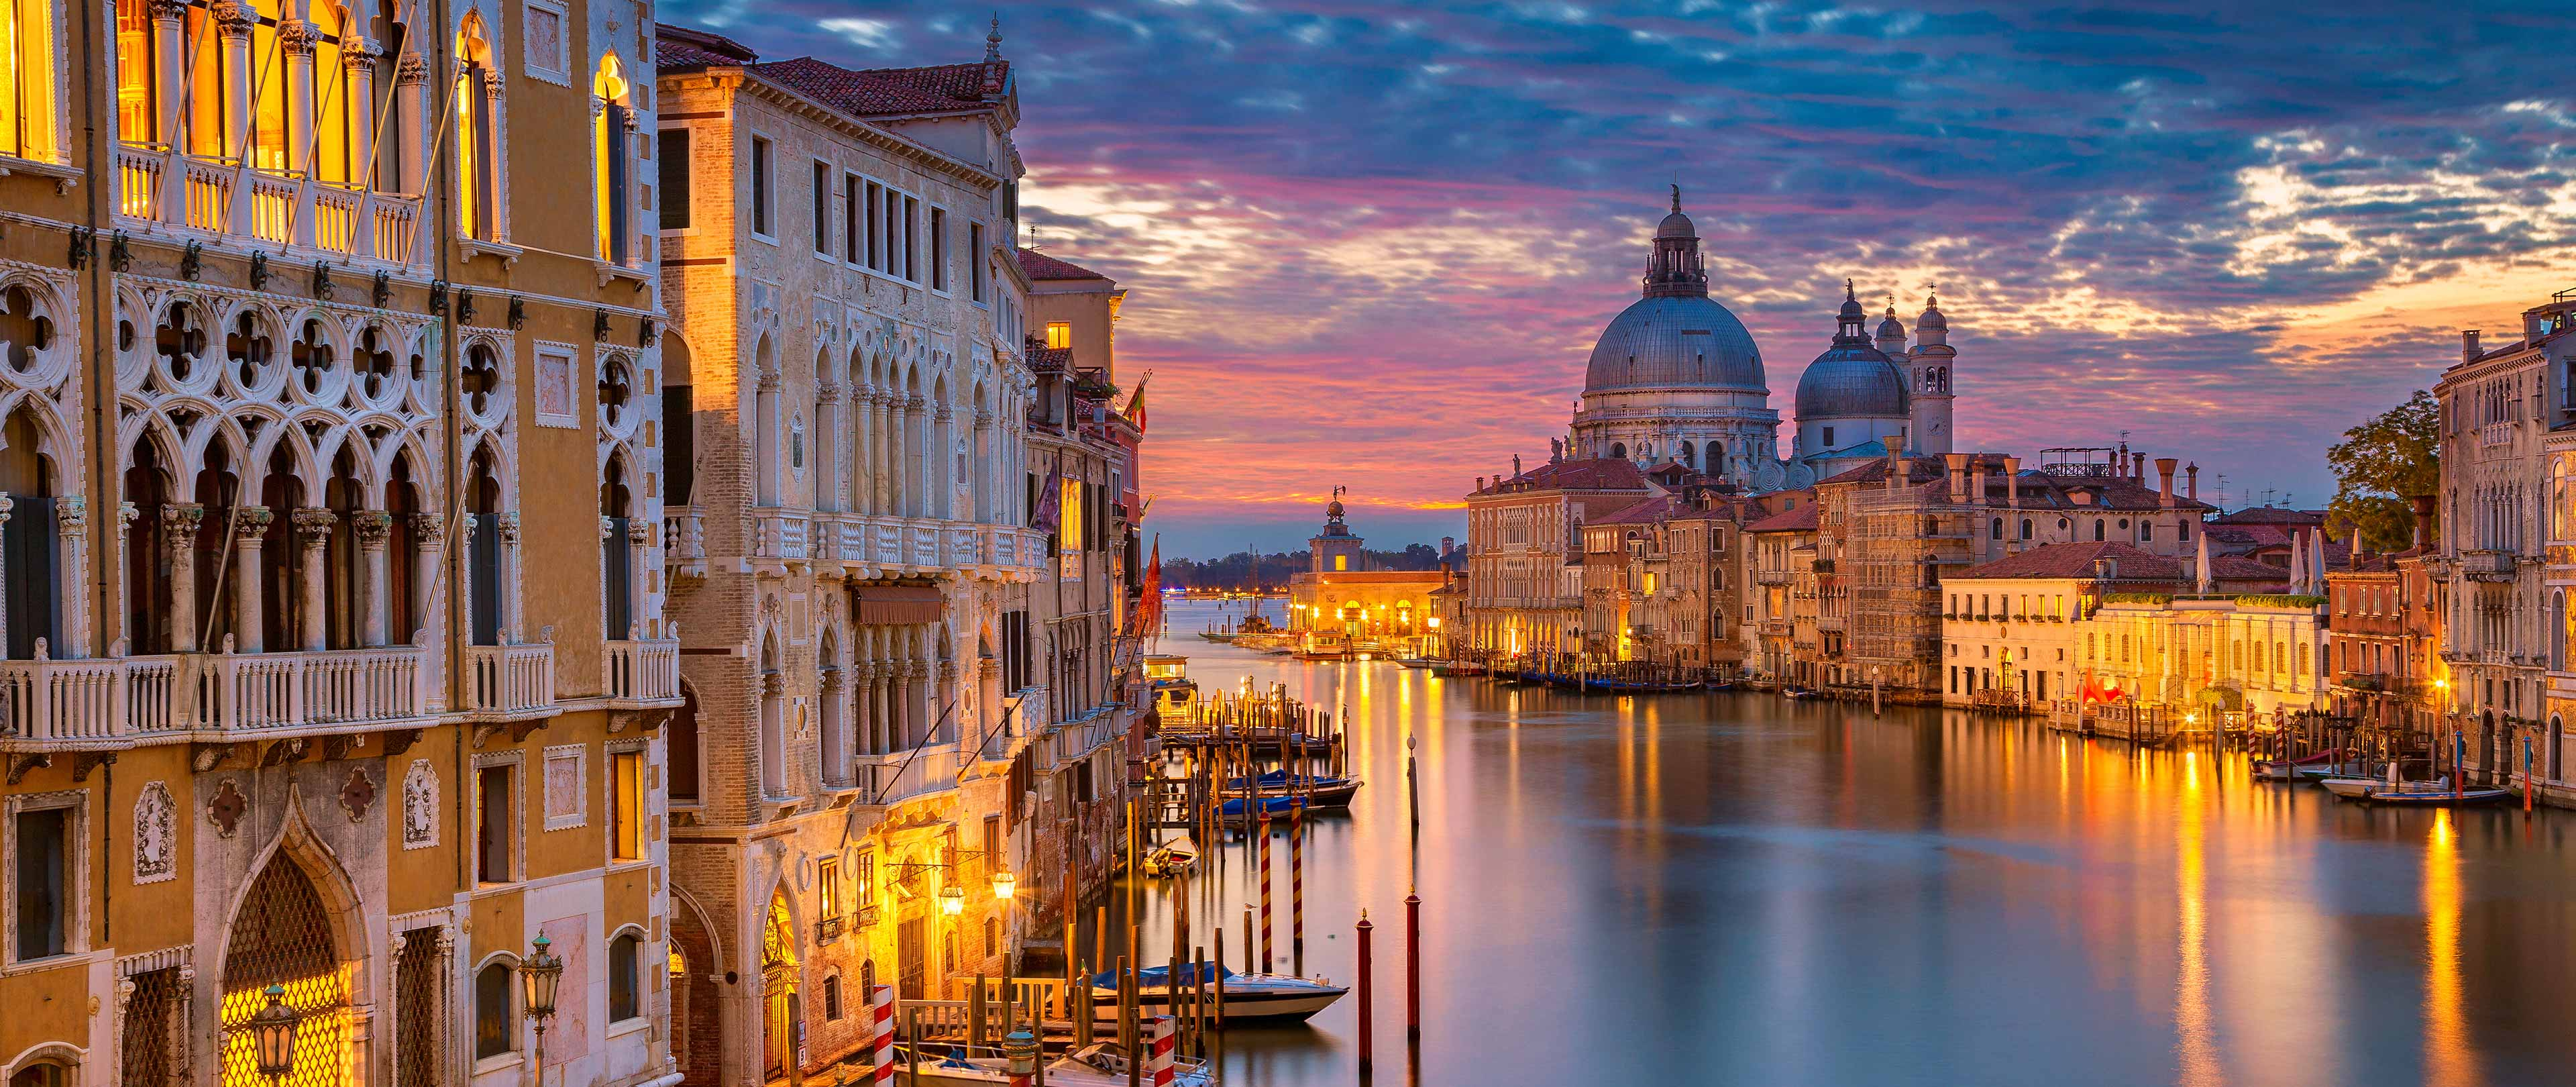 5 Reasons to Visit Venice